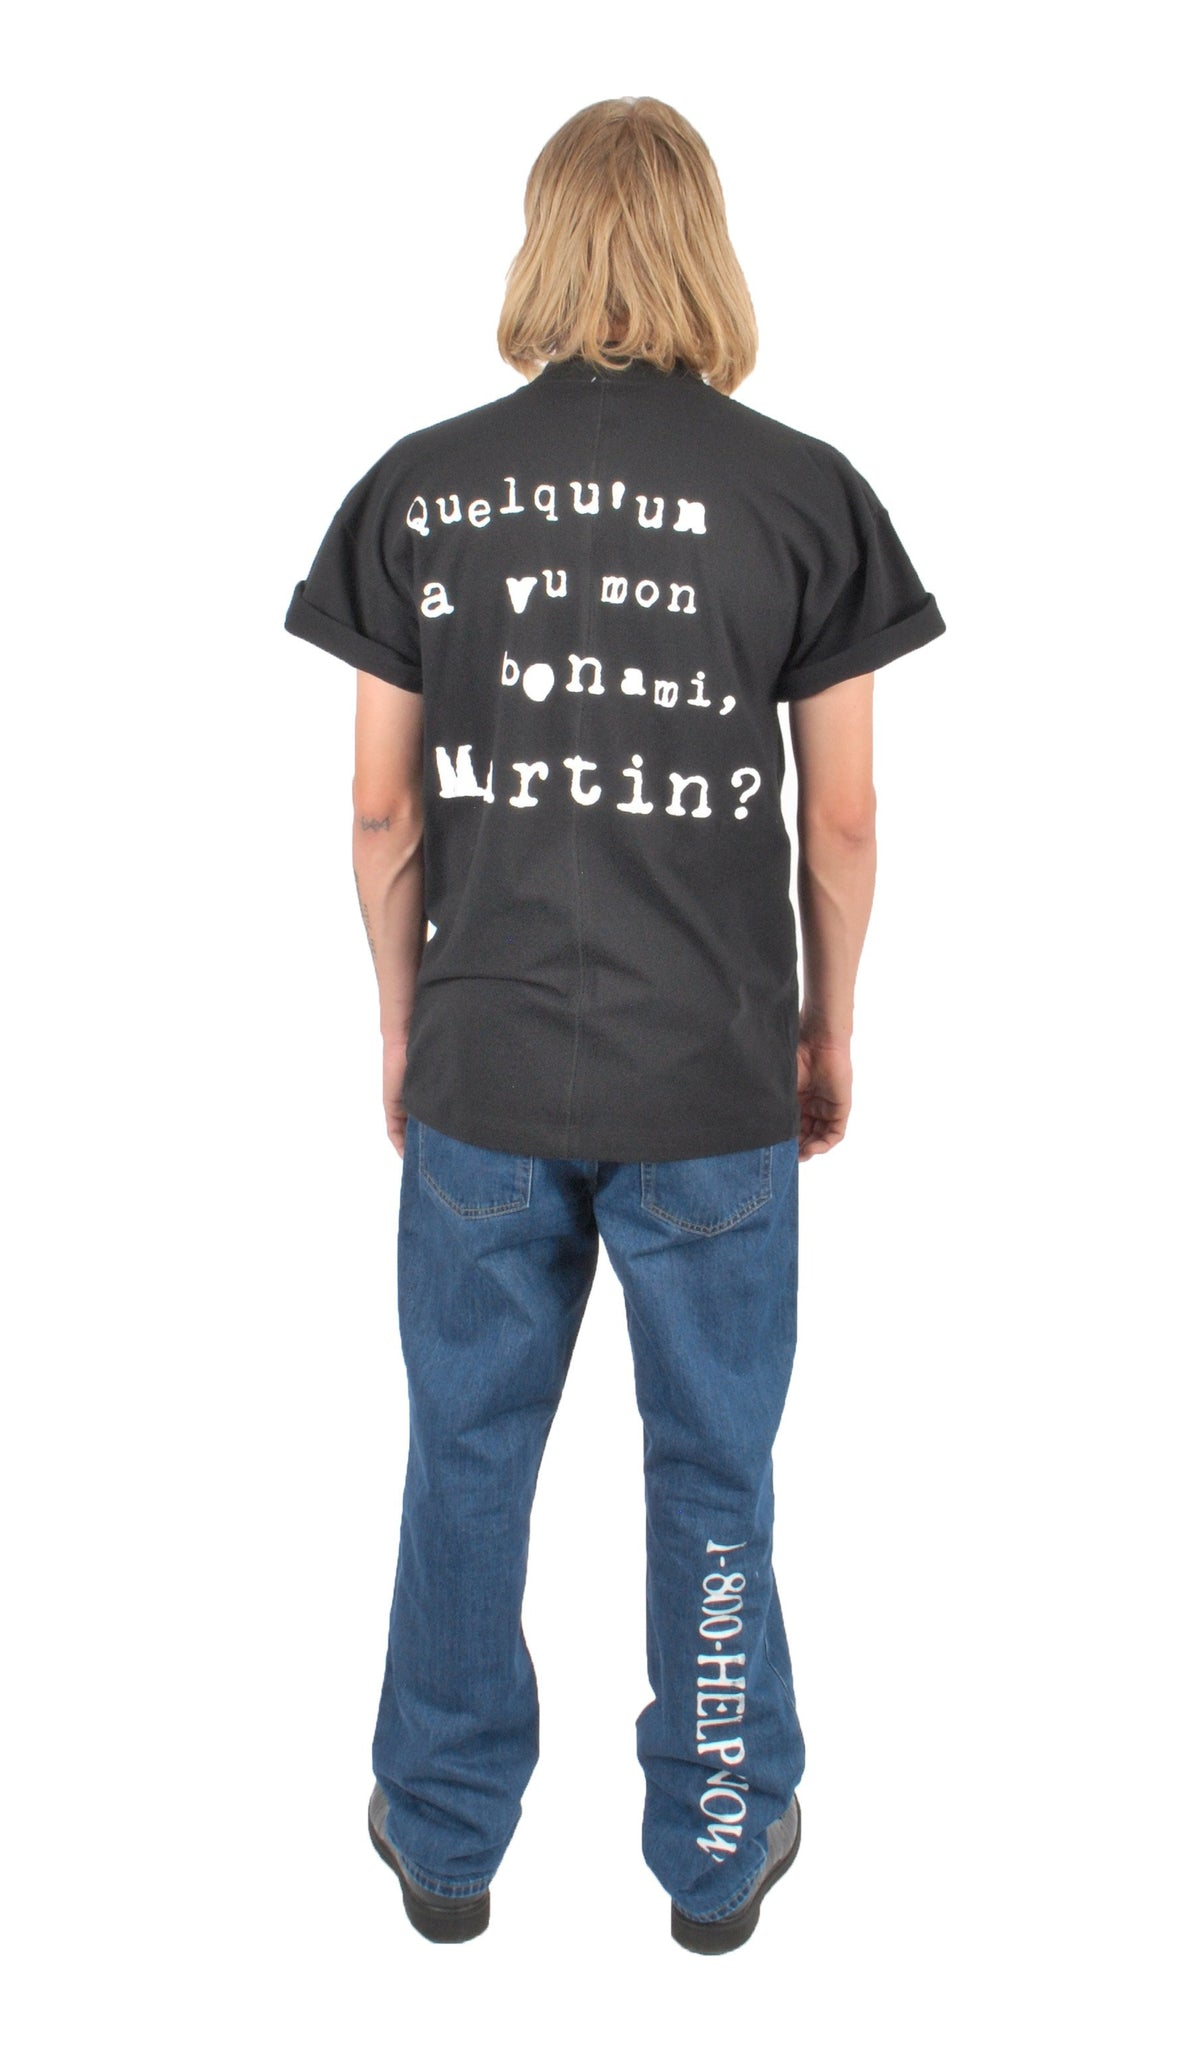 """HAS ANYBODY SEEN MARTIN?"" T-SHIRT - The Incorporated"